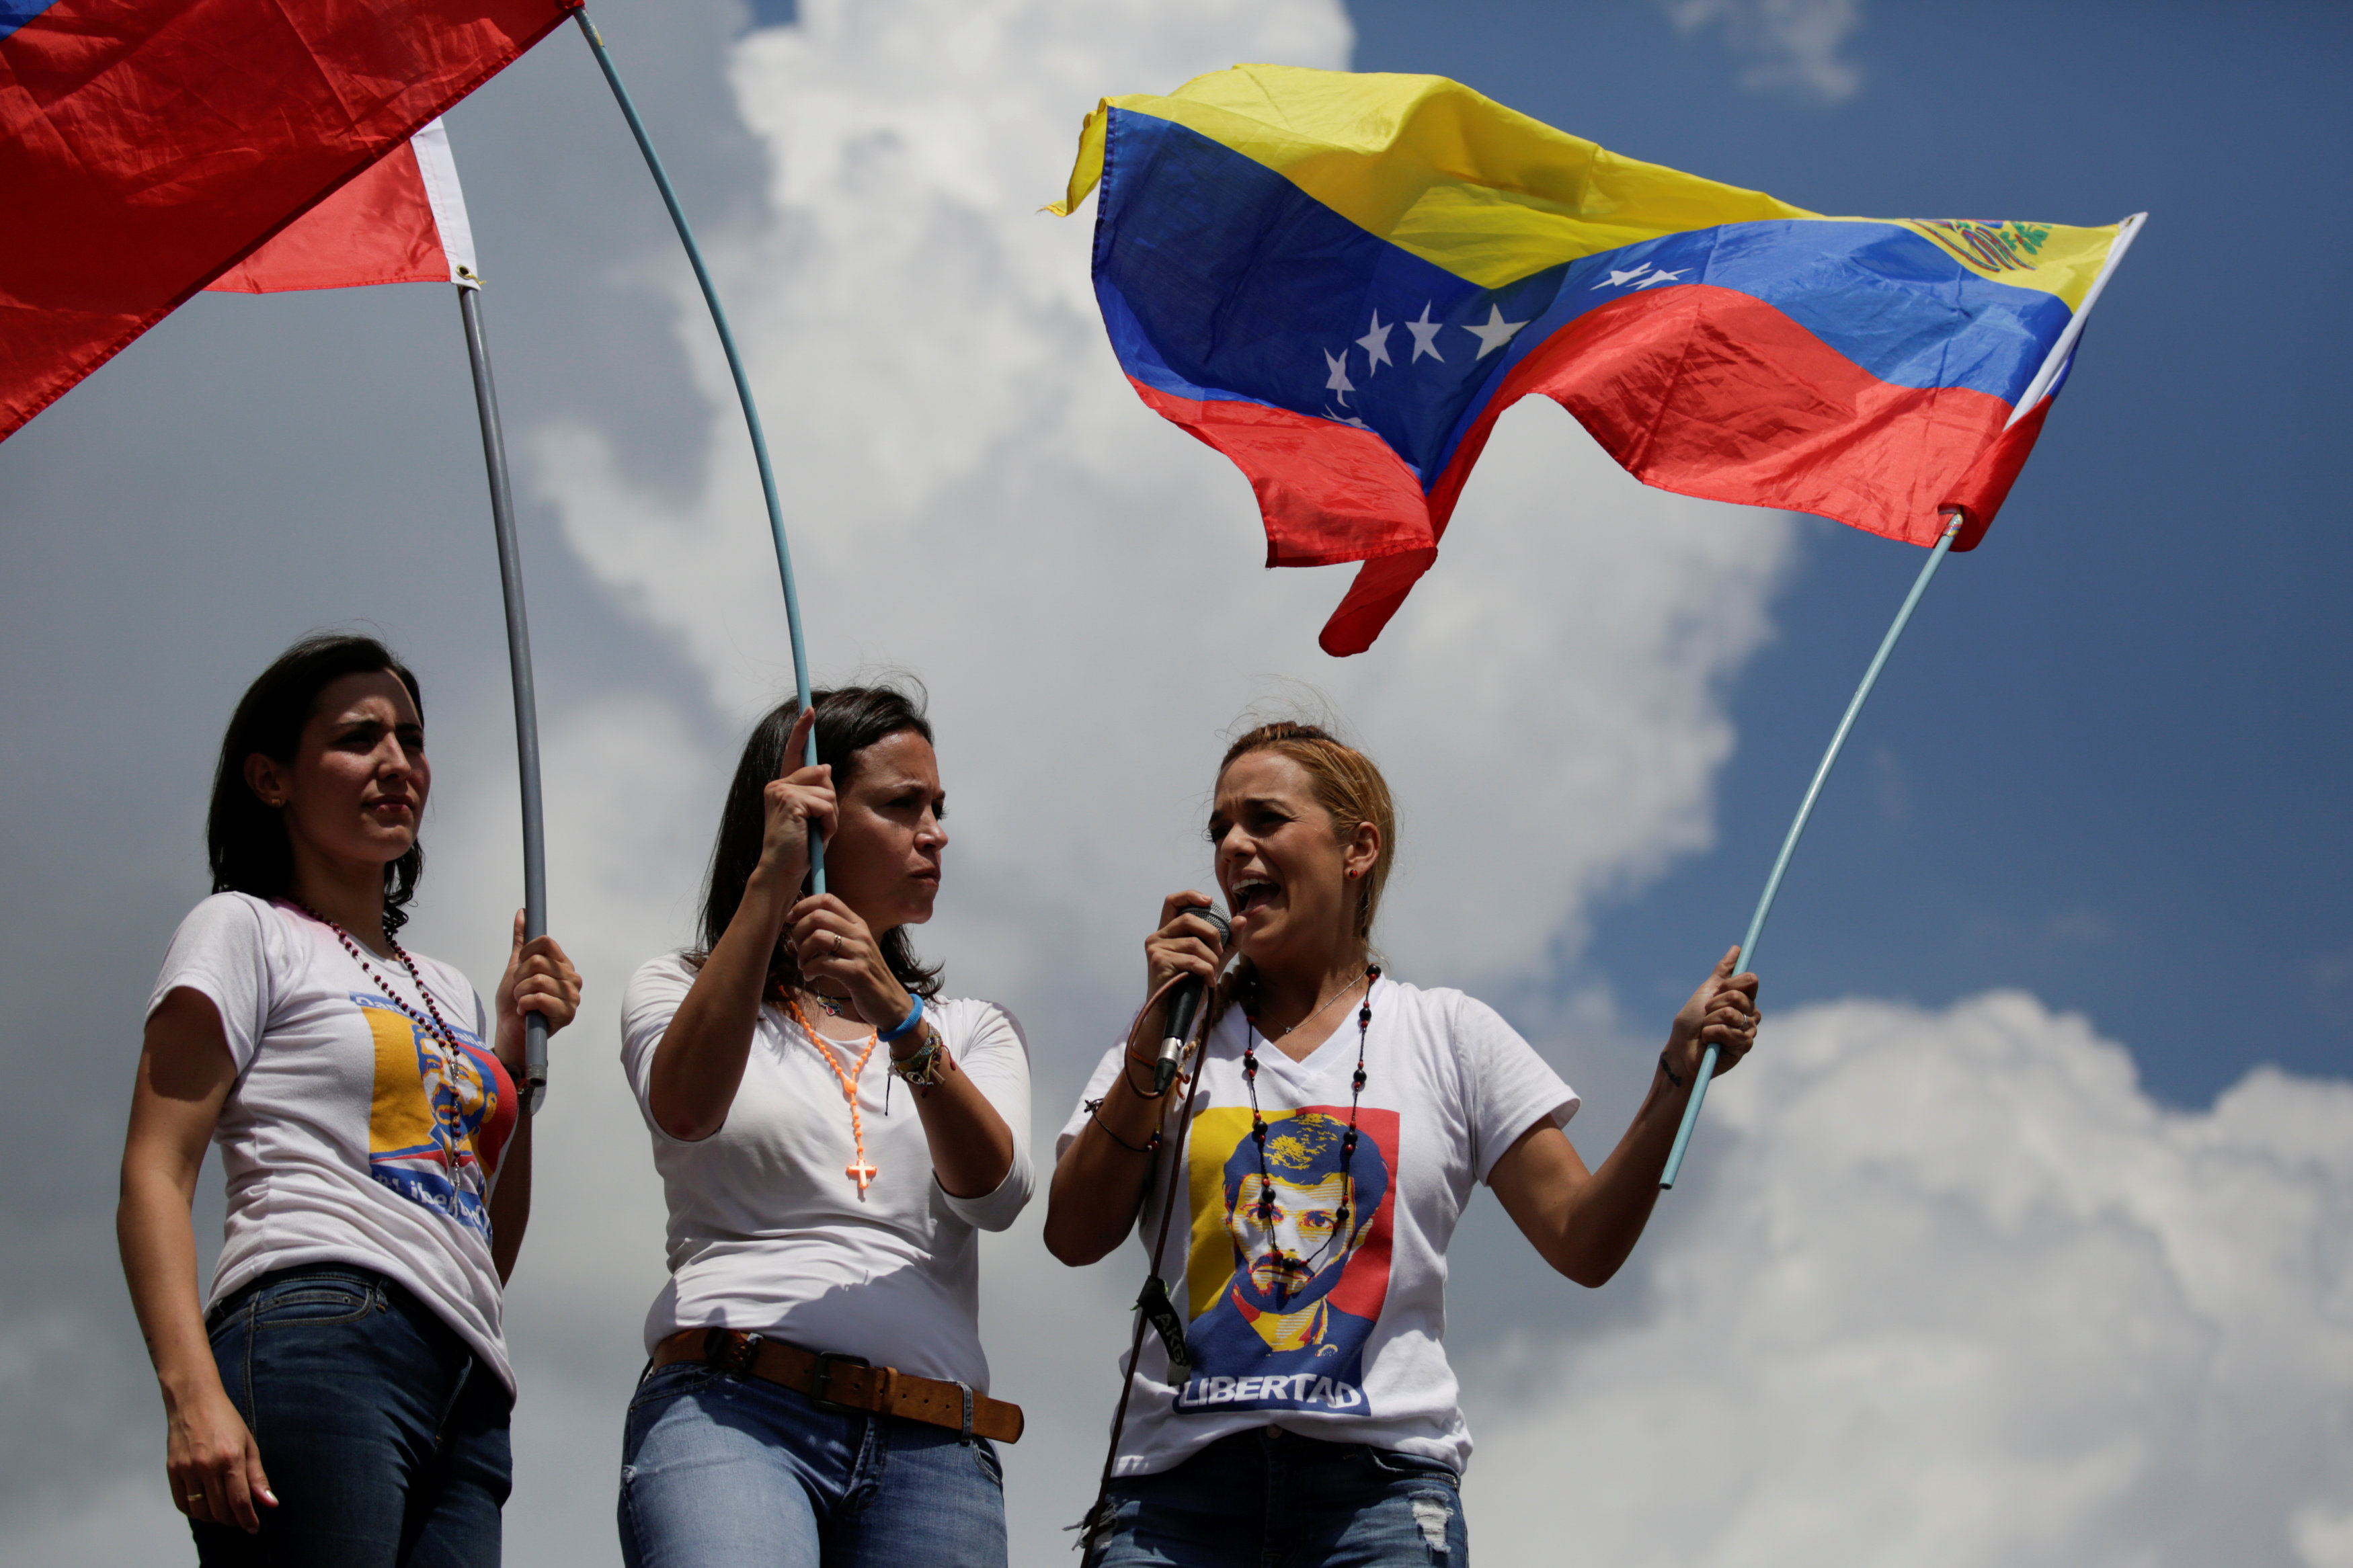 Lilian Tintori (R), wife of jailed Venezuelan opposition leader Leopoldo Lopez speaks to supporters during a rally to demand a referendum to remove Venezuela's President Nicolas Maduro, next to Venezuelan opposition leader Maria Corina Machado (C) and Patricia Ceballos, mayor of San Cristobal and wife of jailed former mayor Daniel Ceballos, in Caracas, Venezuela October 22, 2016. REUTERS/Marco Bello